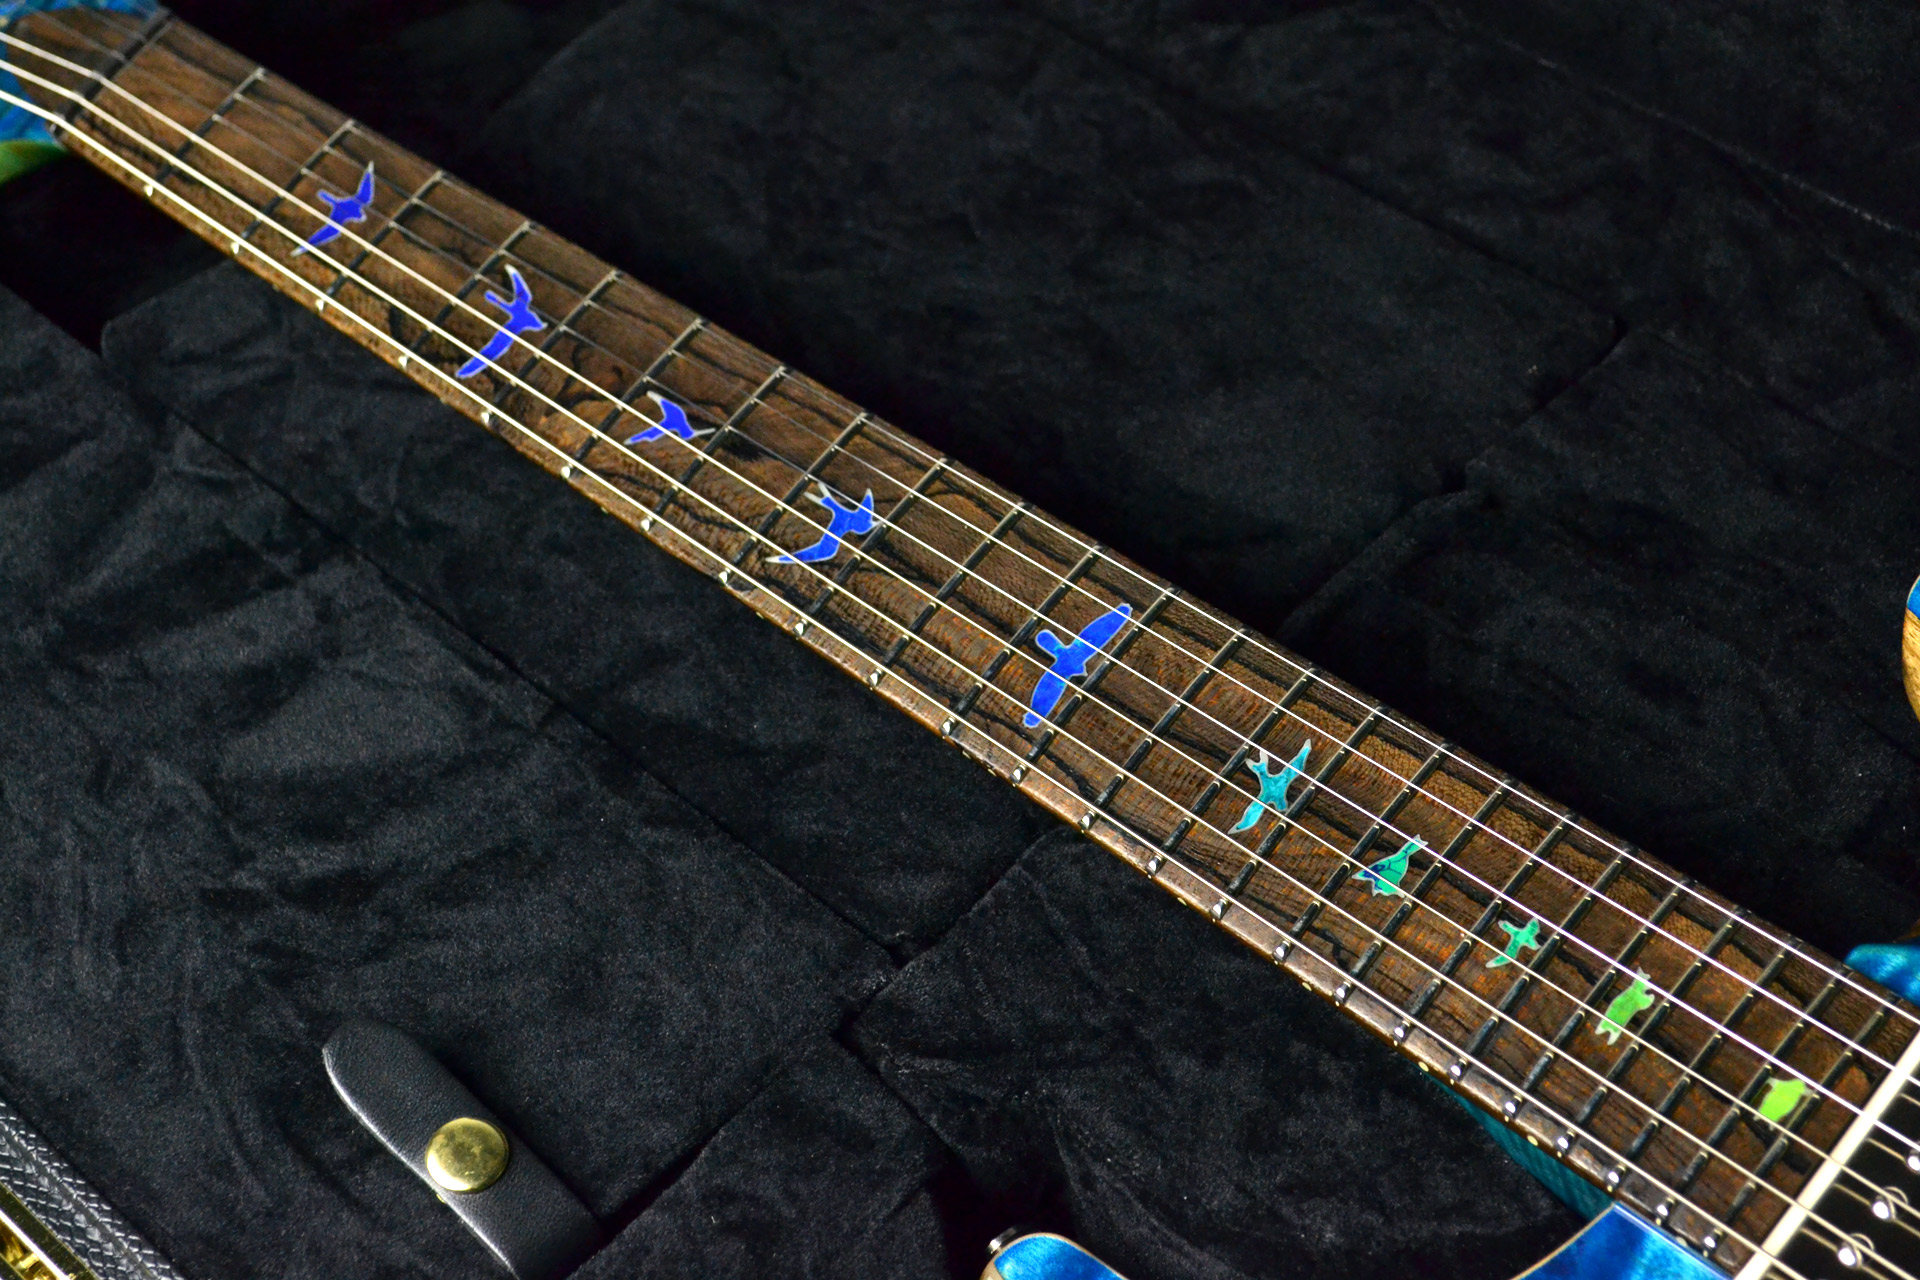 Private Stock #7659 Custom24 3-piece Top Aquamarine&Blue Fade,Luminlay Purflingの指板画像